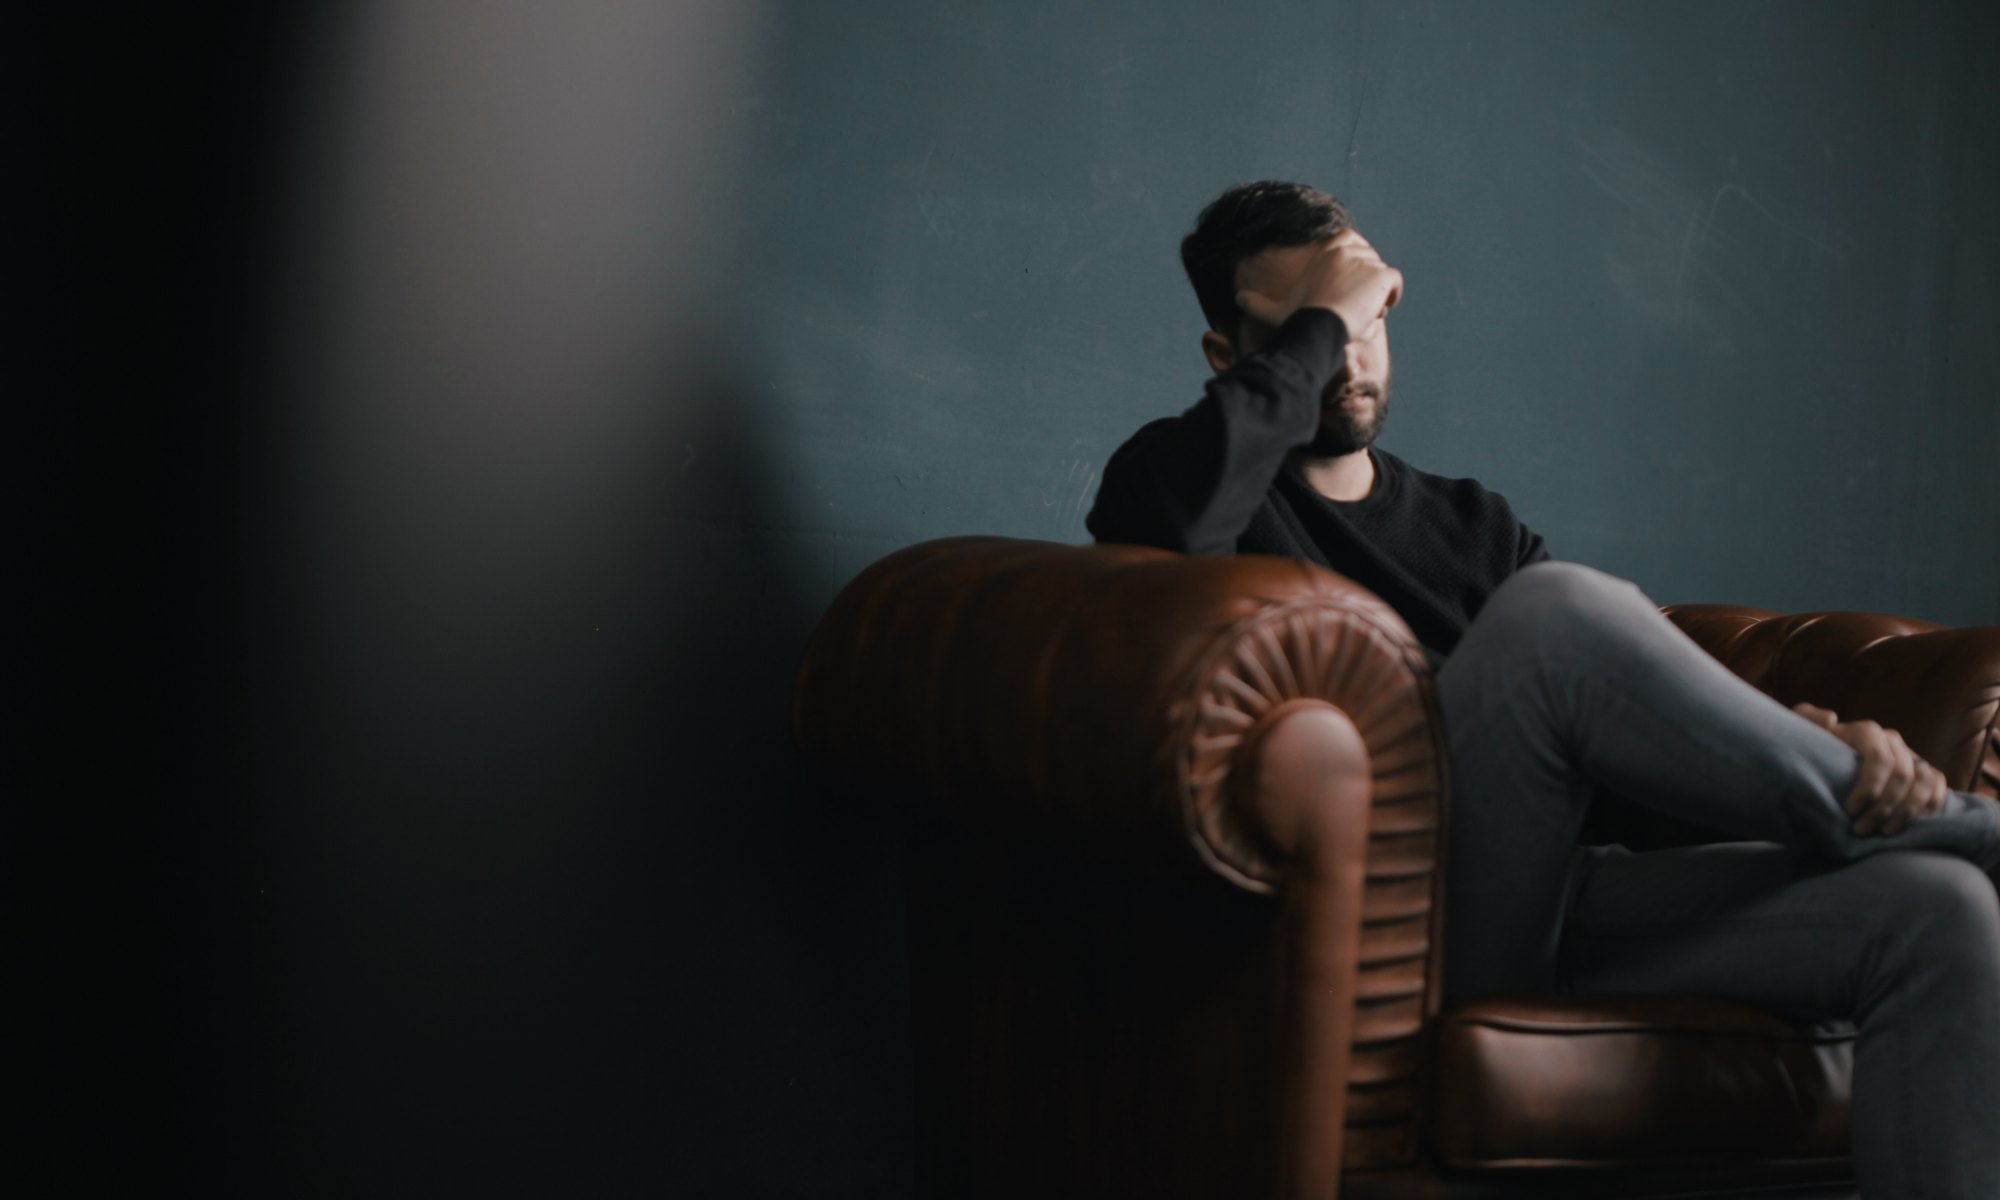 Man sitting on couch with hand on forehead worried and stressed